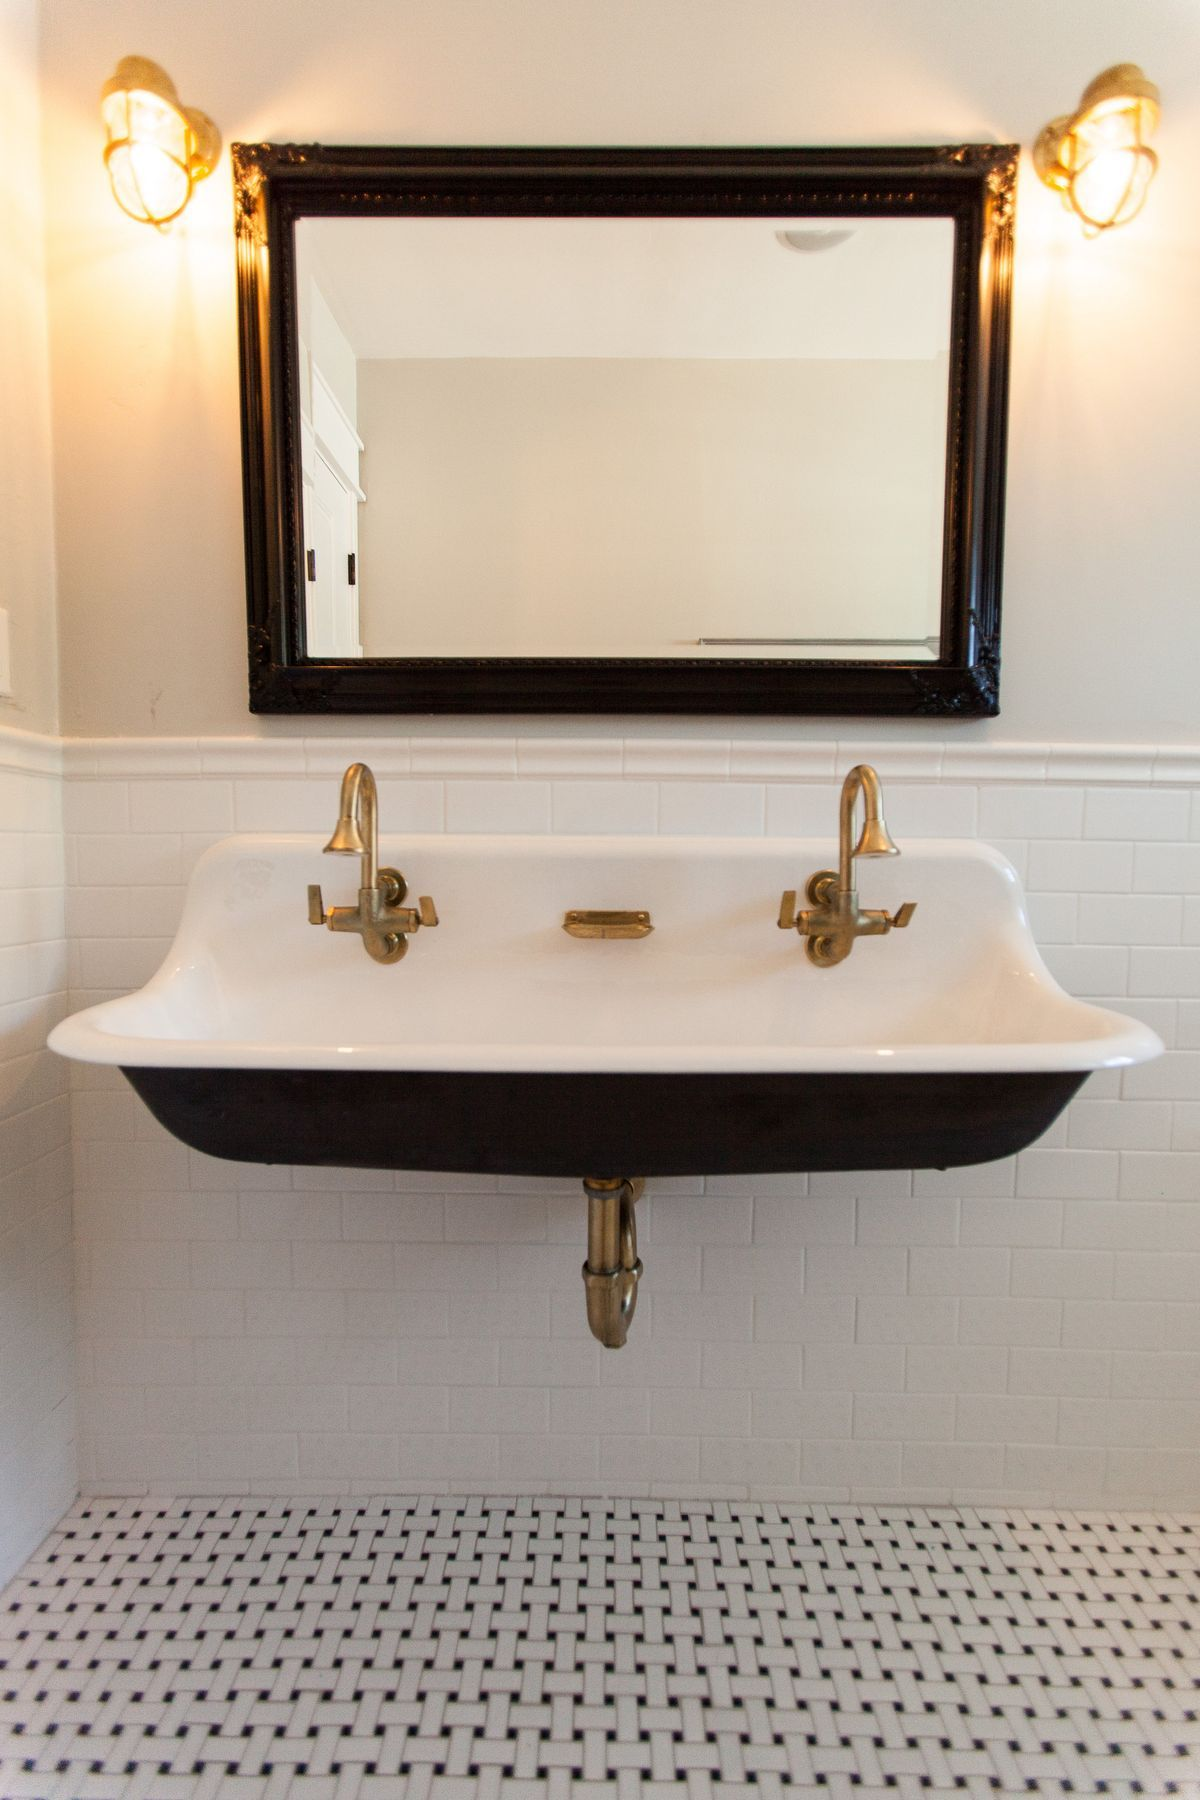 Bathroom Kohler Double Sink Love For The Home Bathroom Trough Sink Kohler